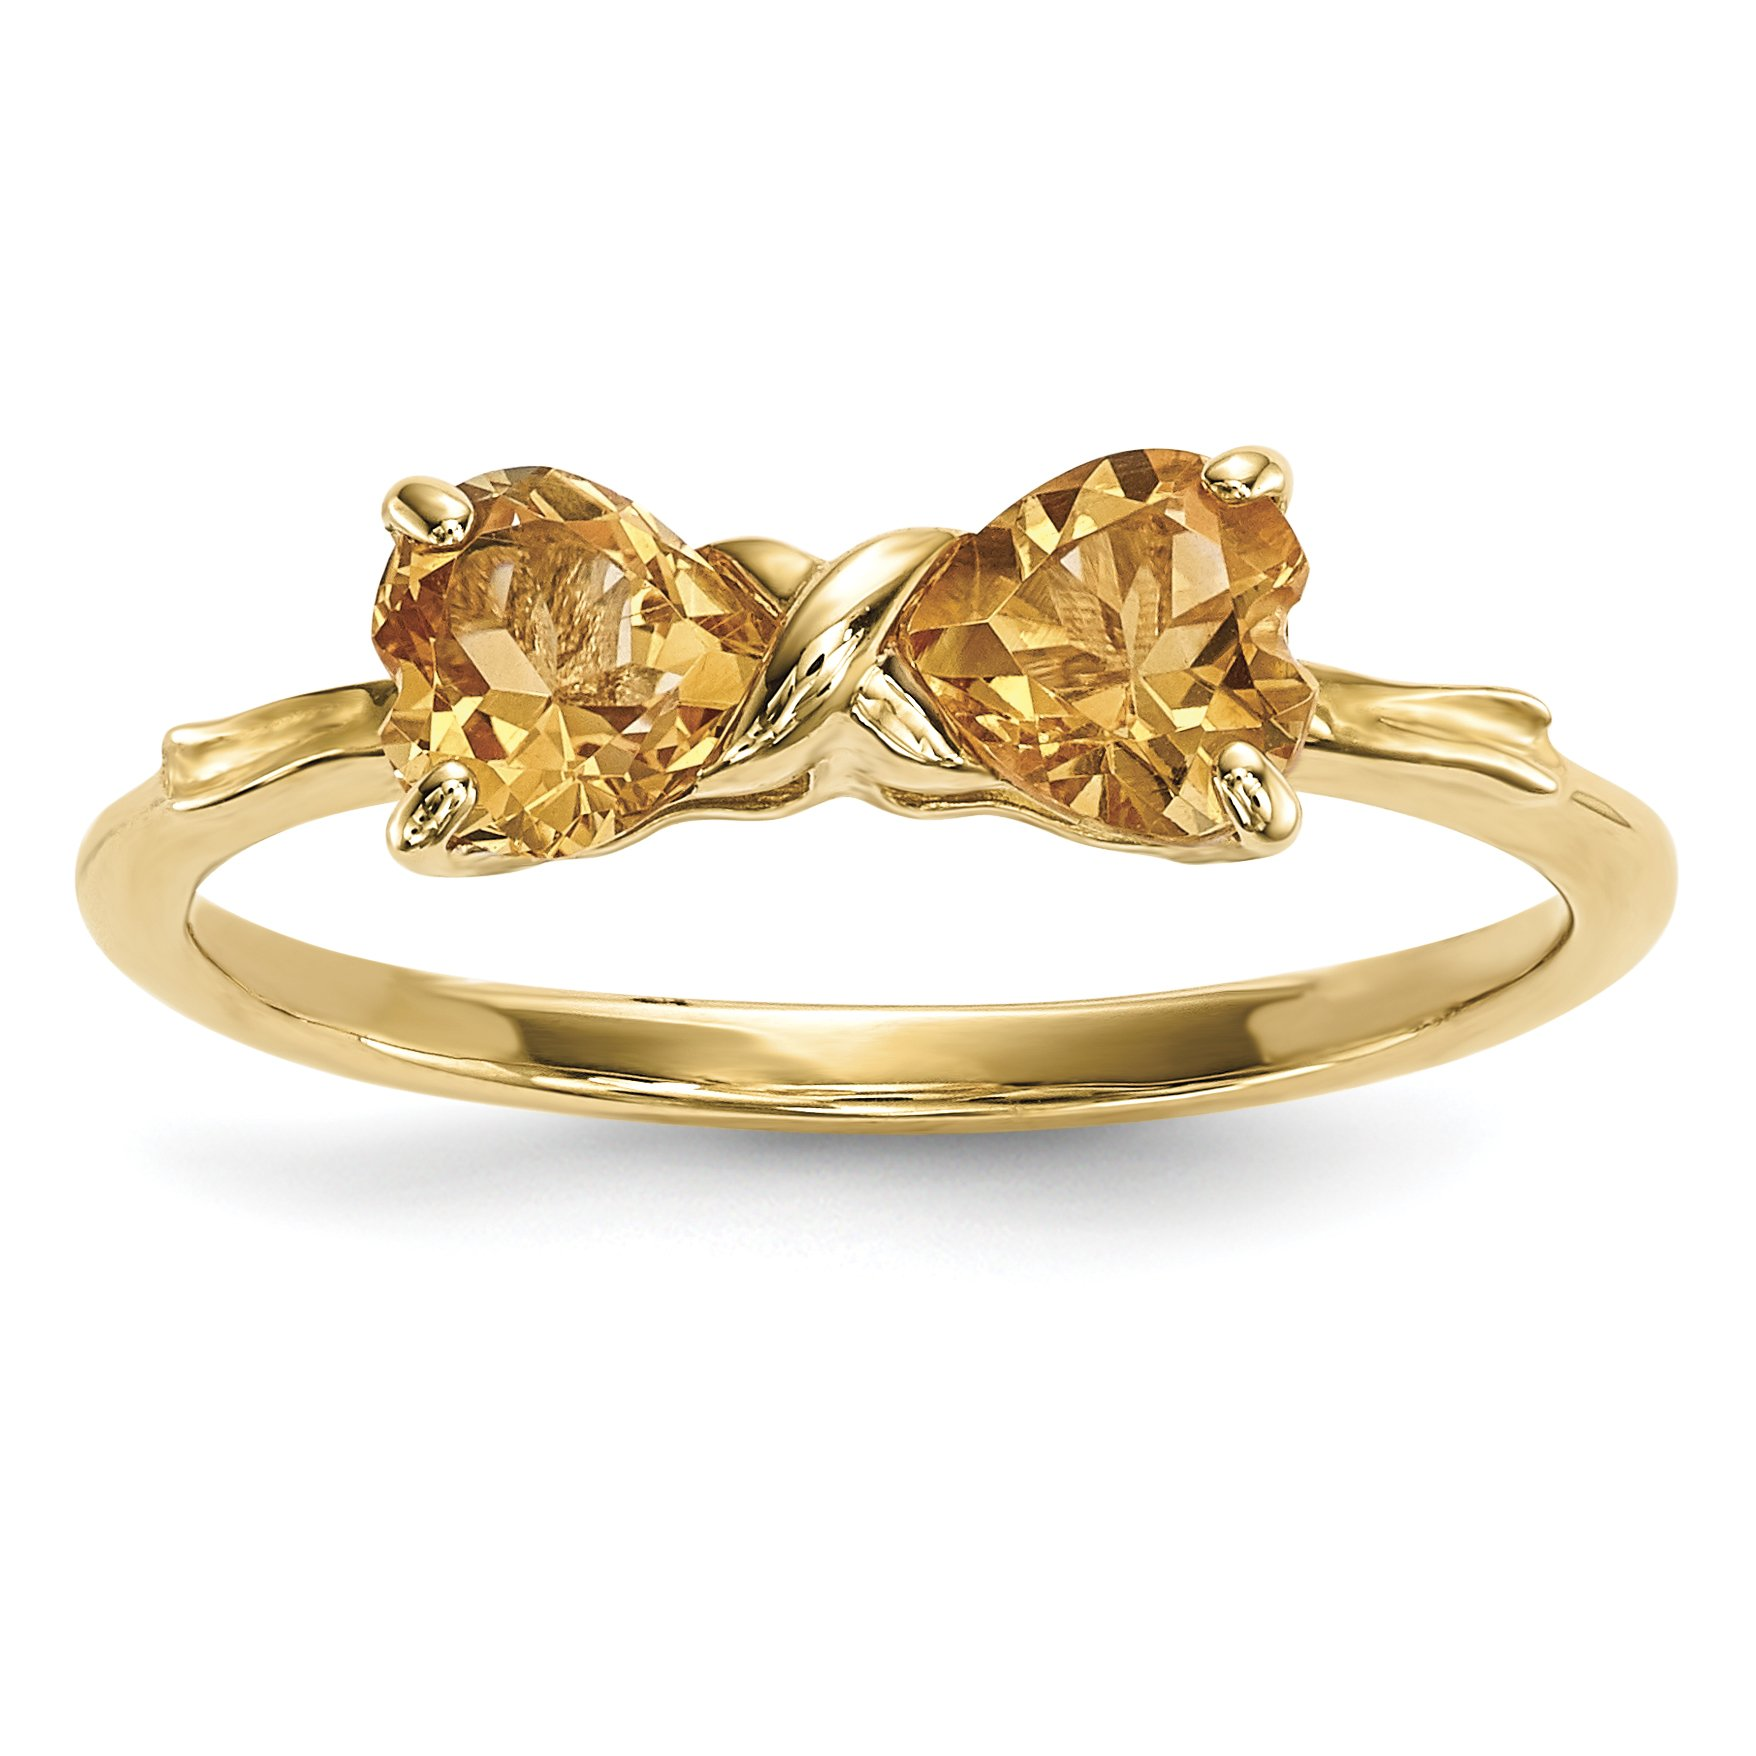 ICE CARATS 14k Yellow Gold Citrine Bow Band Ring Size 7.00 Birthstone November Set Style Fine Jewelry Gift Set For Women Heart